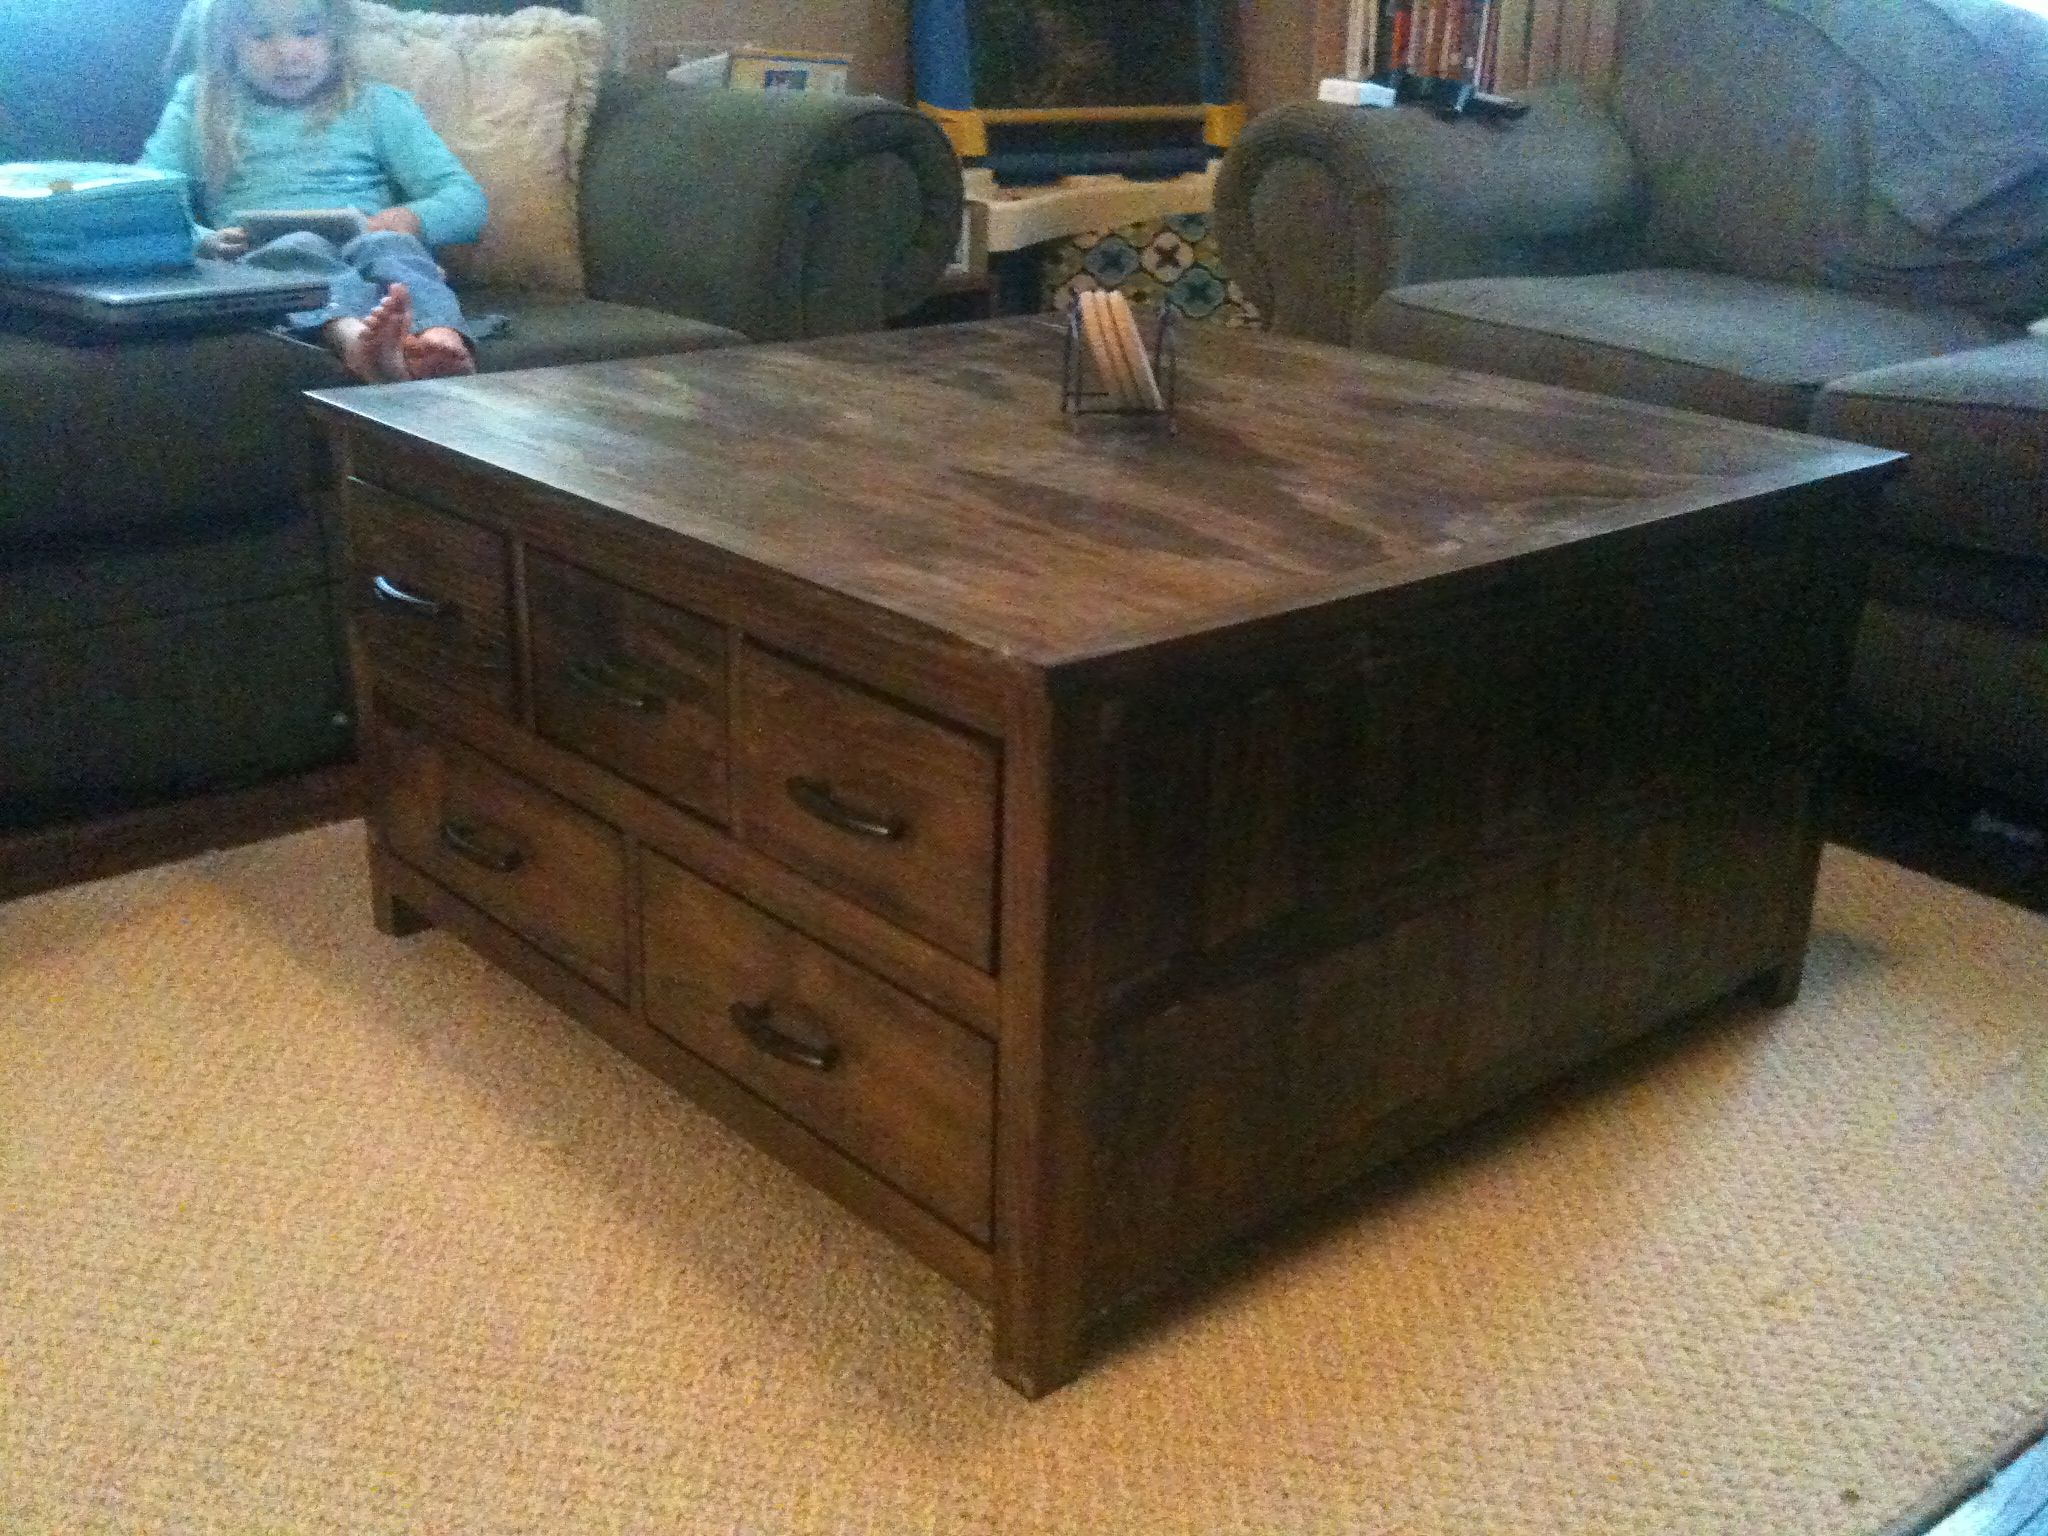 Unique DIY coffee table ideas that offer ceative style and storage. #diy # coffeetable #withstorage #coffelovers #designideas